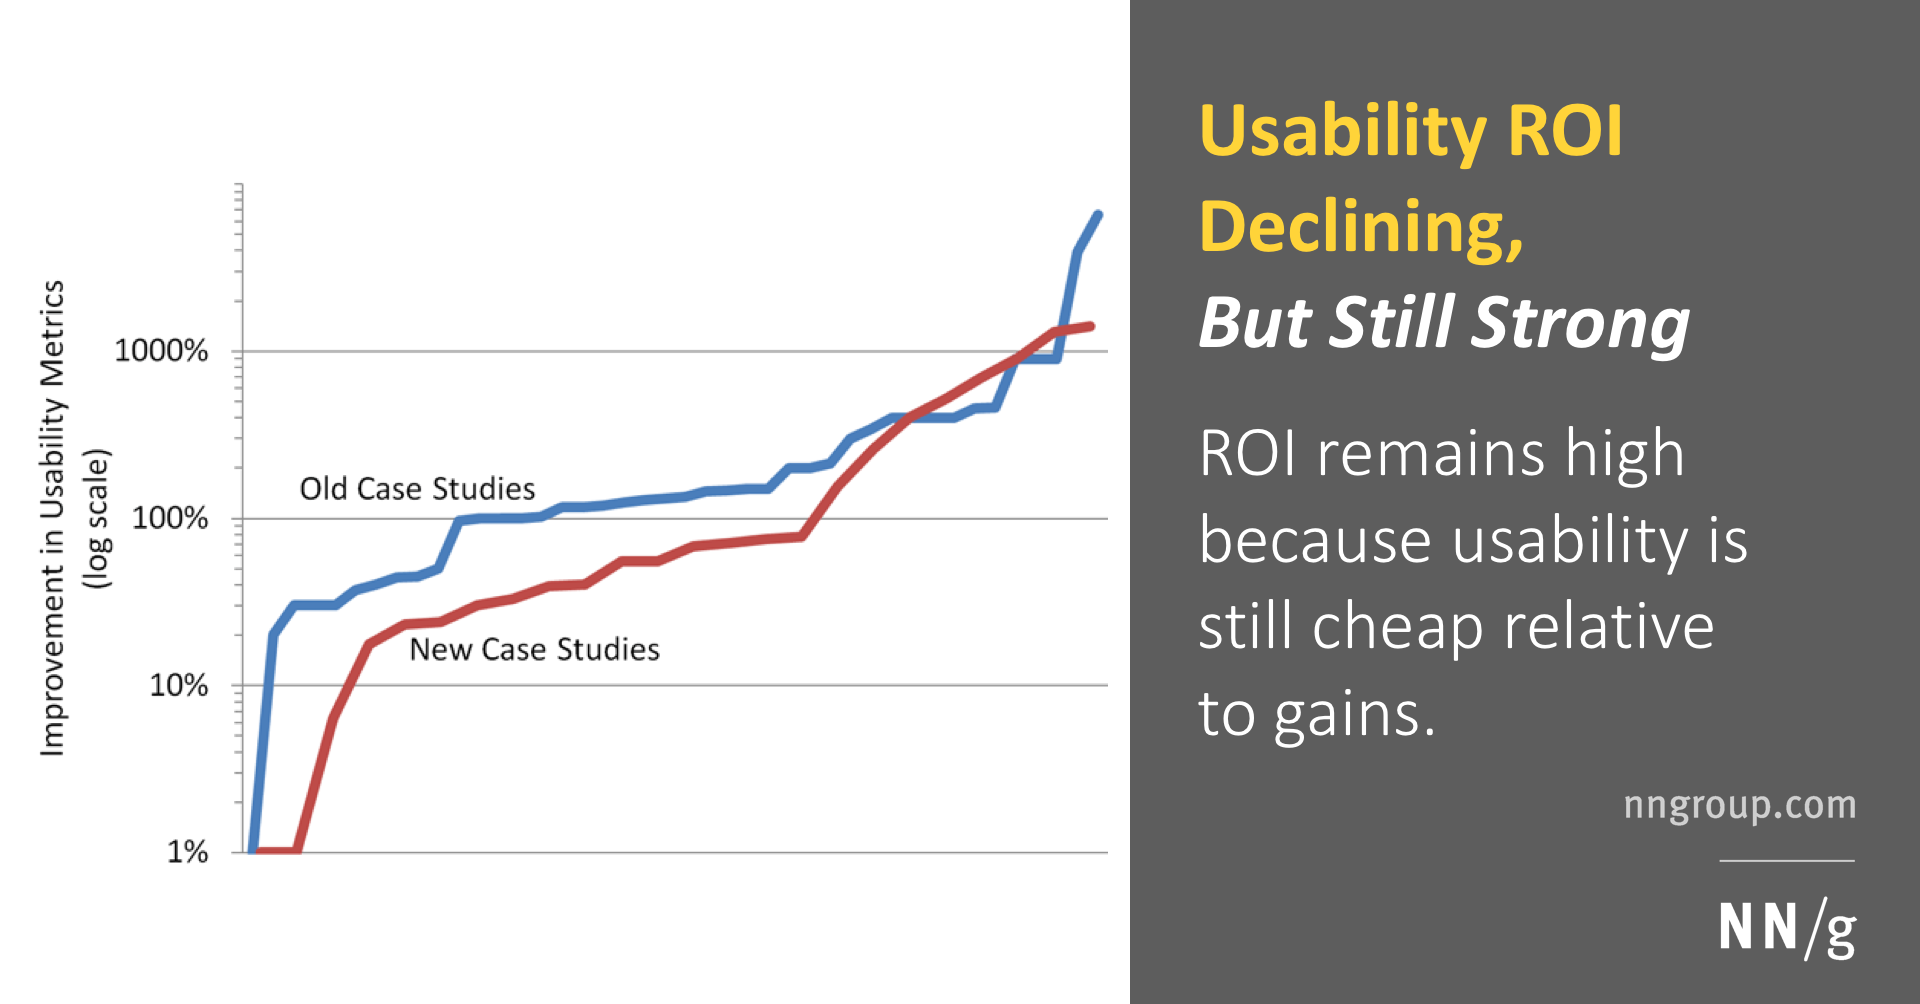 Usability Roi Declining But Still Strong